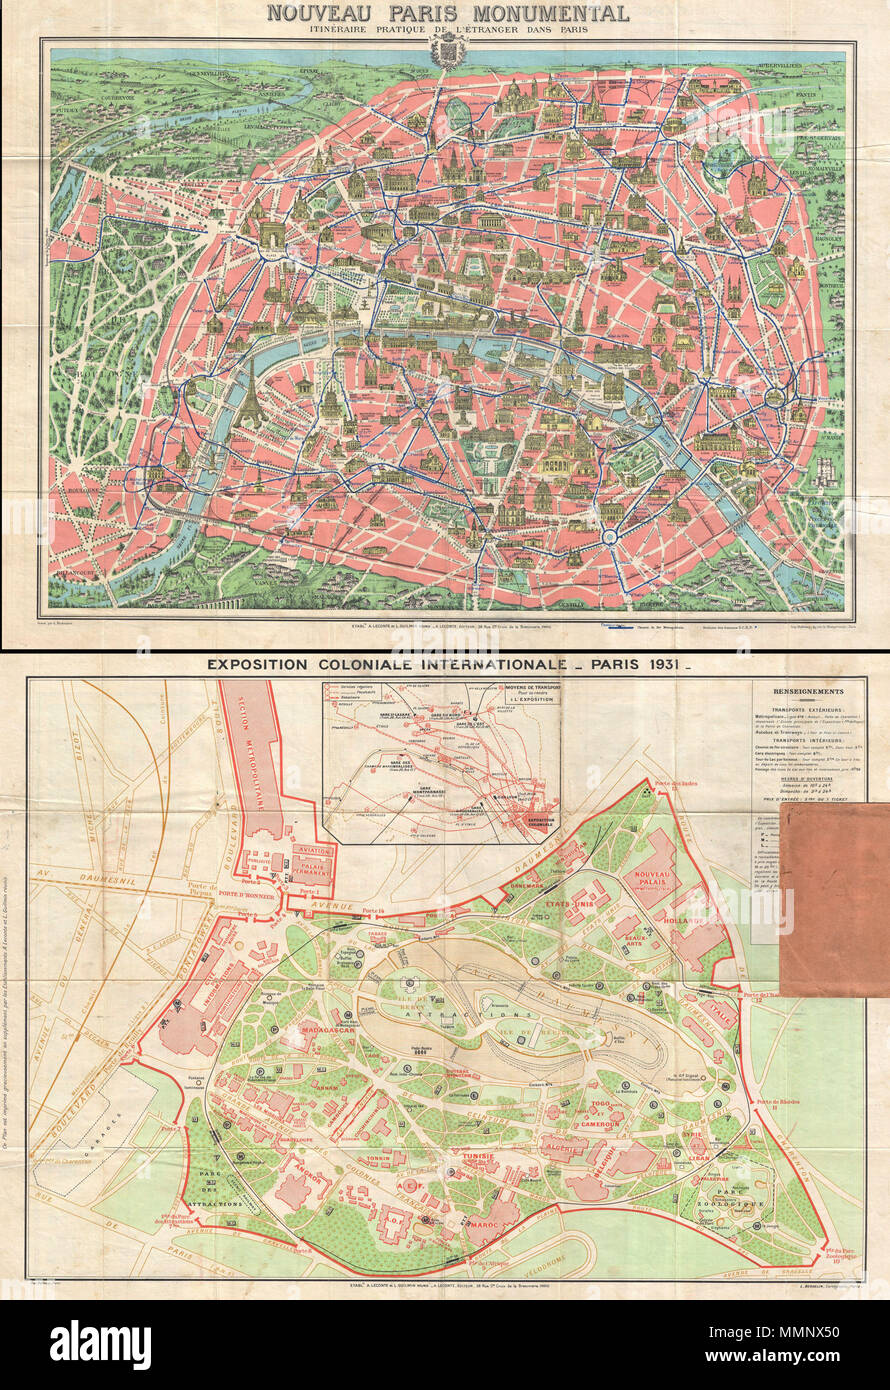 english this is an extremely attractive 1931 tourist pocket map of paris france covers the old walled city of paris and the immediate vicinity